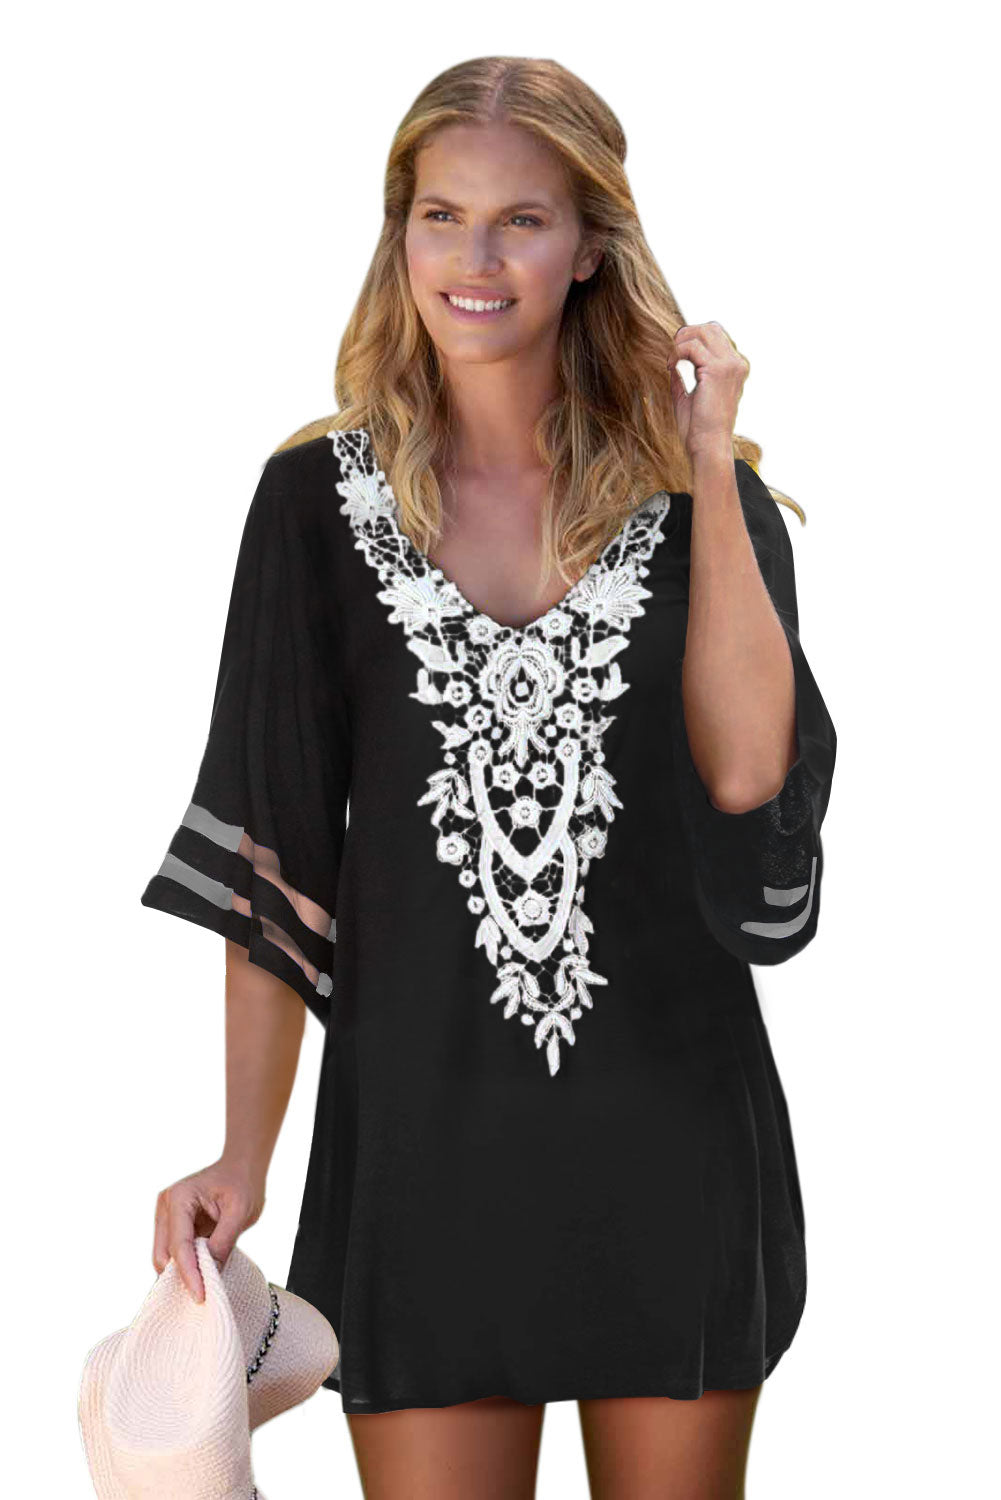 Black Crochet Detail Mesh Sleeve Chiffon Beach Cover Up Beach Dresses Discount Designer Fashion Clothes Shoes Bags Women Men Kids Children Black Owned Business